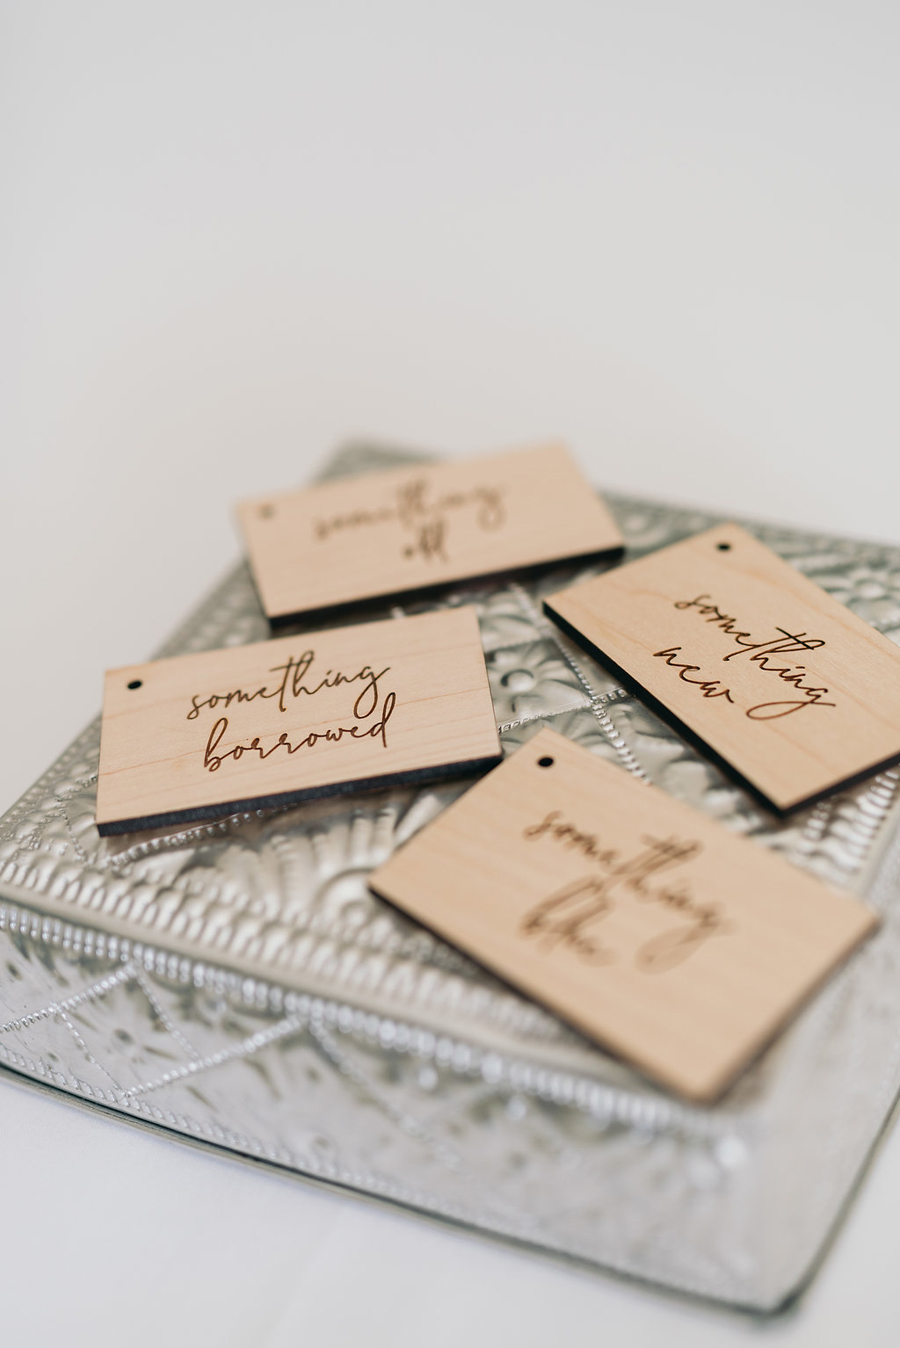 tweed-coast-weddings-wedding-venue-osteria-casuarina-figtree-pictures-photography-brittney-and-justin002.jpg